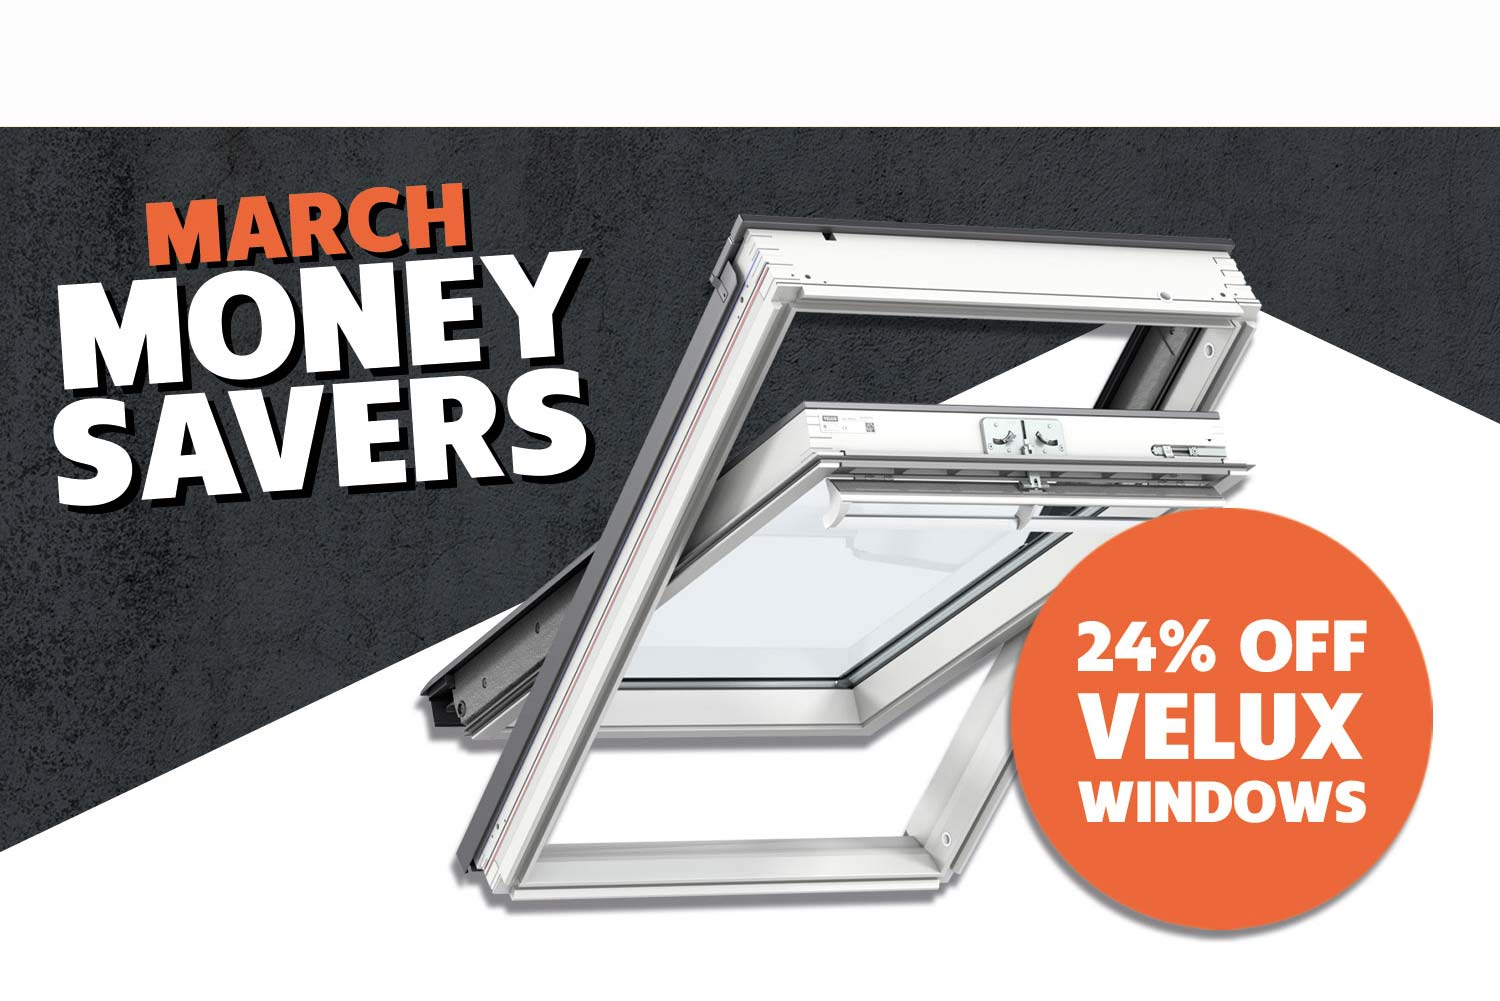 24% OFF ALL VELUX ROOF WINDOWS